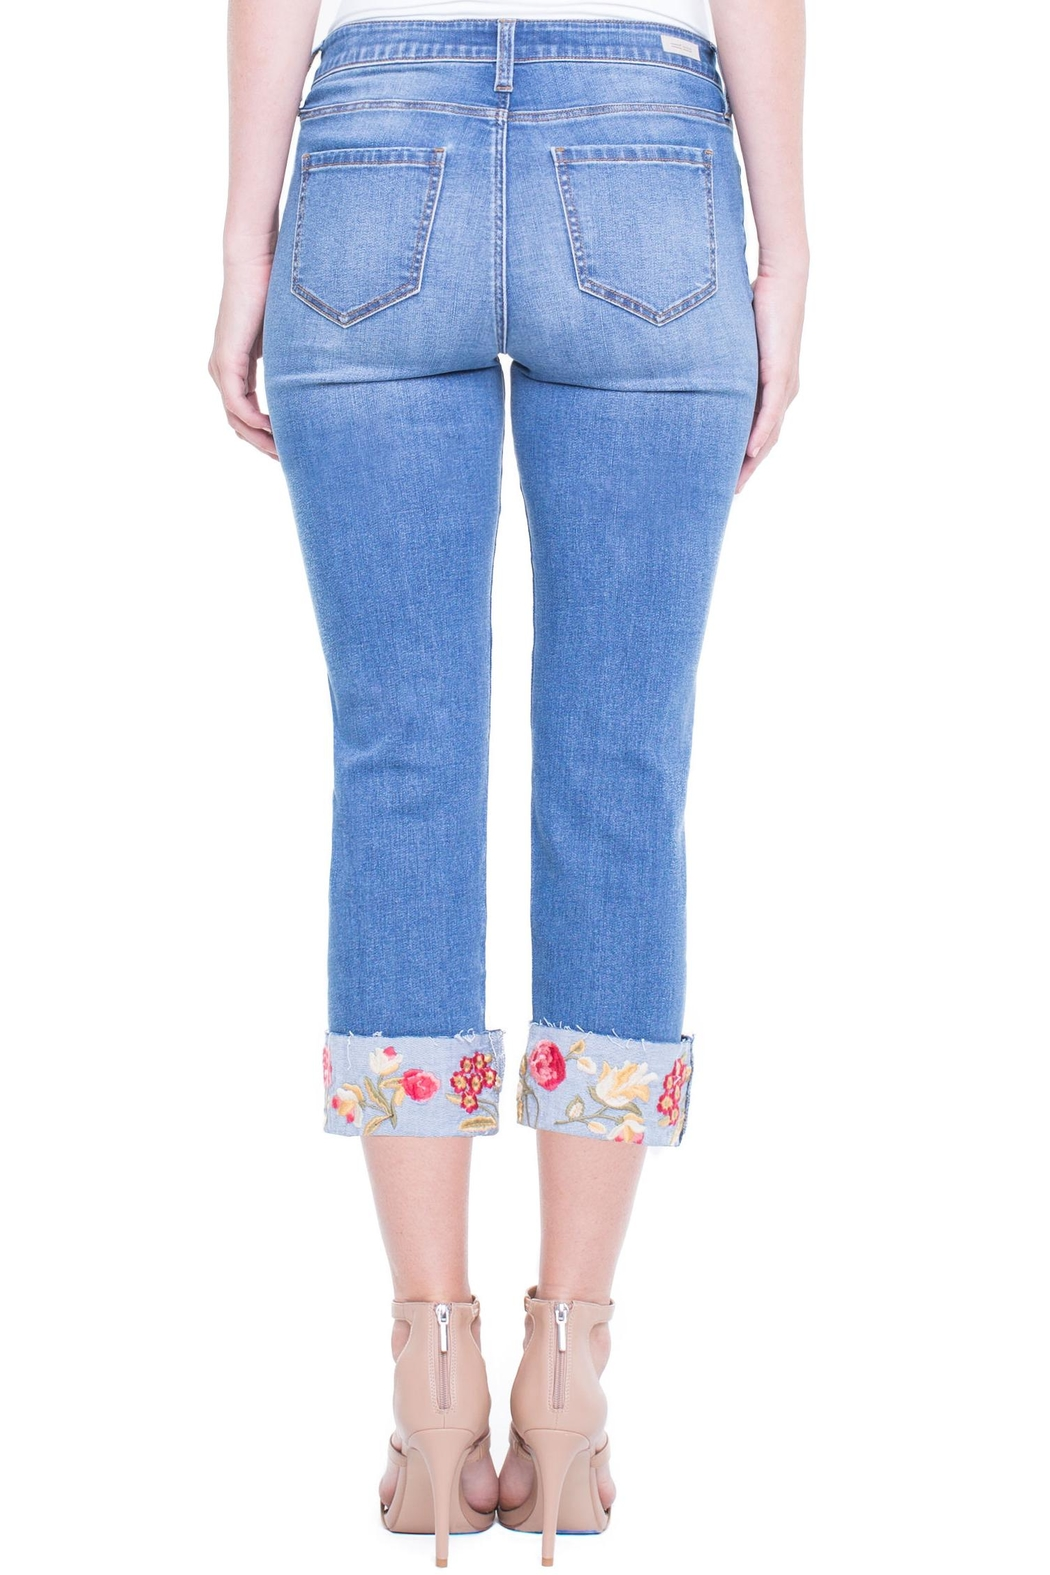 Liverpool Jean Company Floral Cuffed Jeans - Side Cropped Image